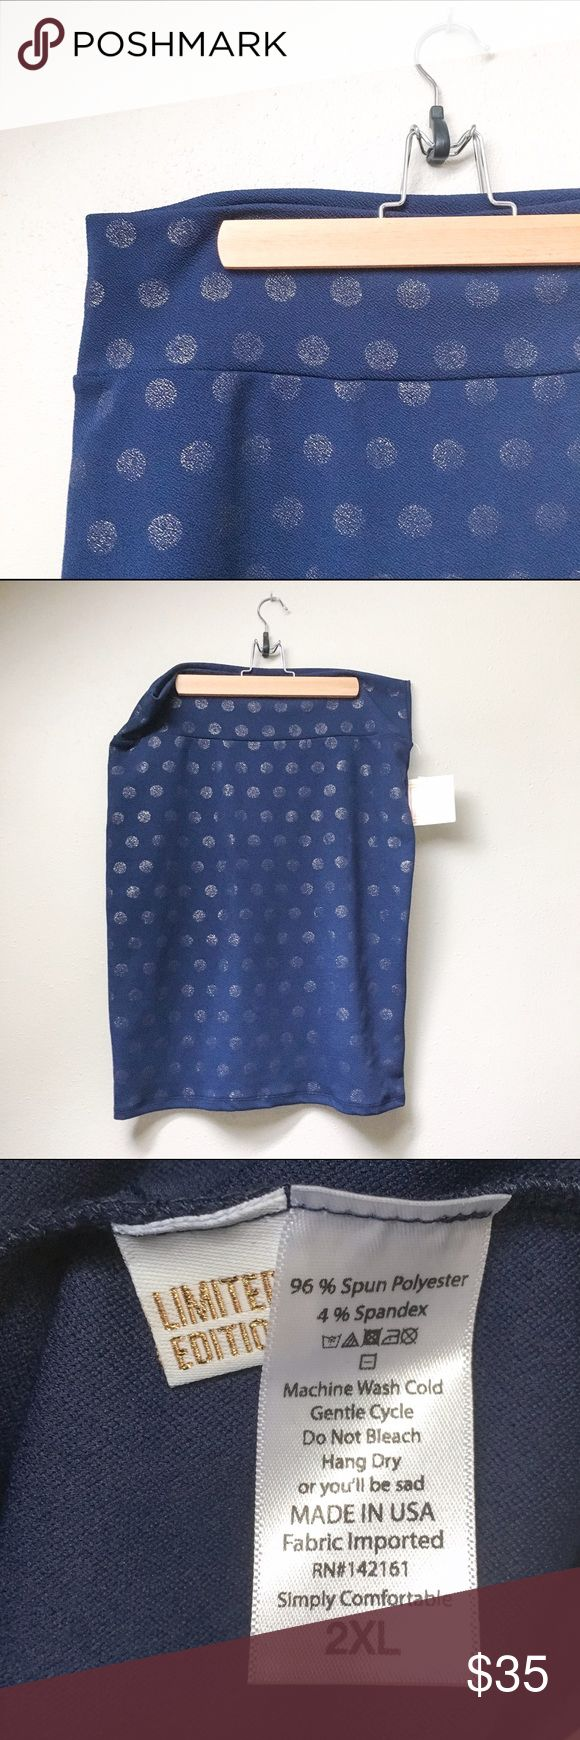 NWT LuLaRoe Cassie Skirt New with tags LuLaRoe Cassie skirt. Beautiful navy blue with subtle shimmering gold polka dots, this skirt is a LuLaRoe limited edition capsule piece. LuLaRoe's Cassie skirt is the most comfortable pencil skirt you'll ever wear, featuring a wide yoga-style waistband, and you can dress it up or dress it down with ease! LuLaRoe Skirts Pencil